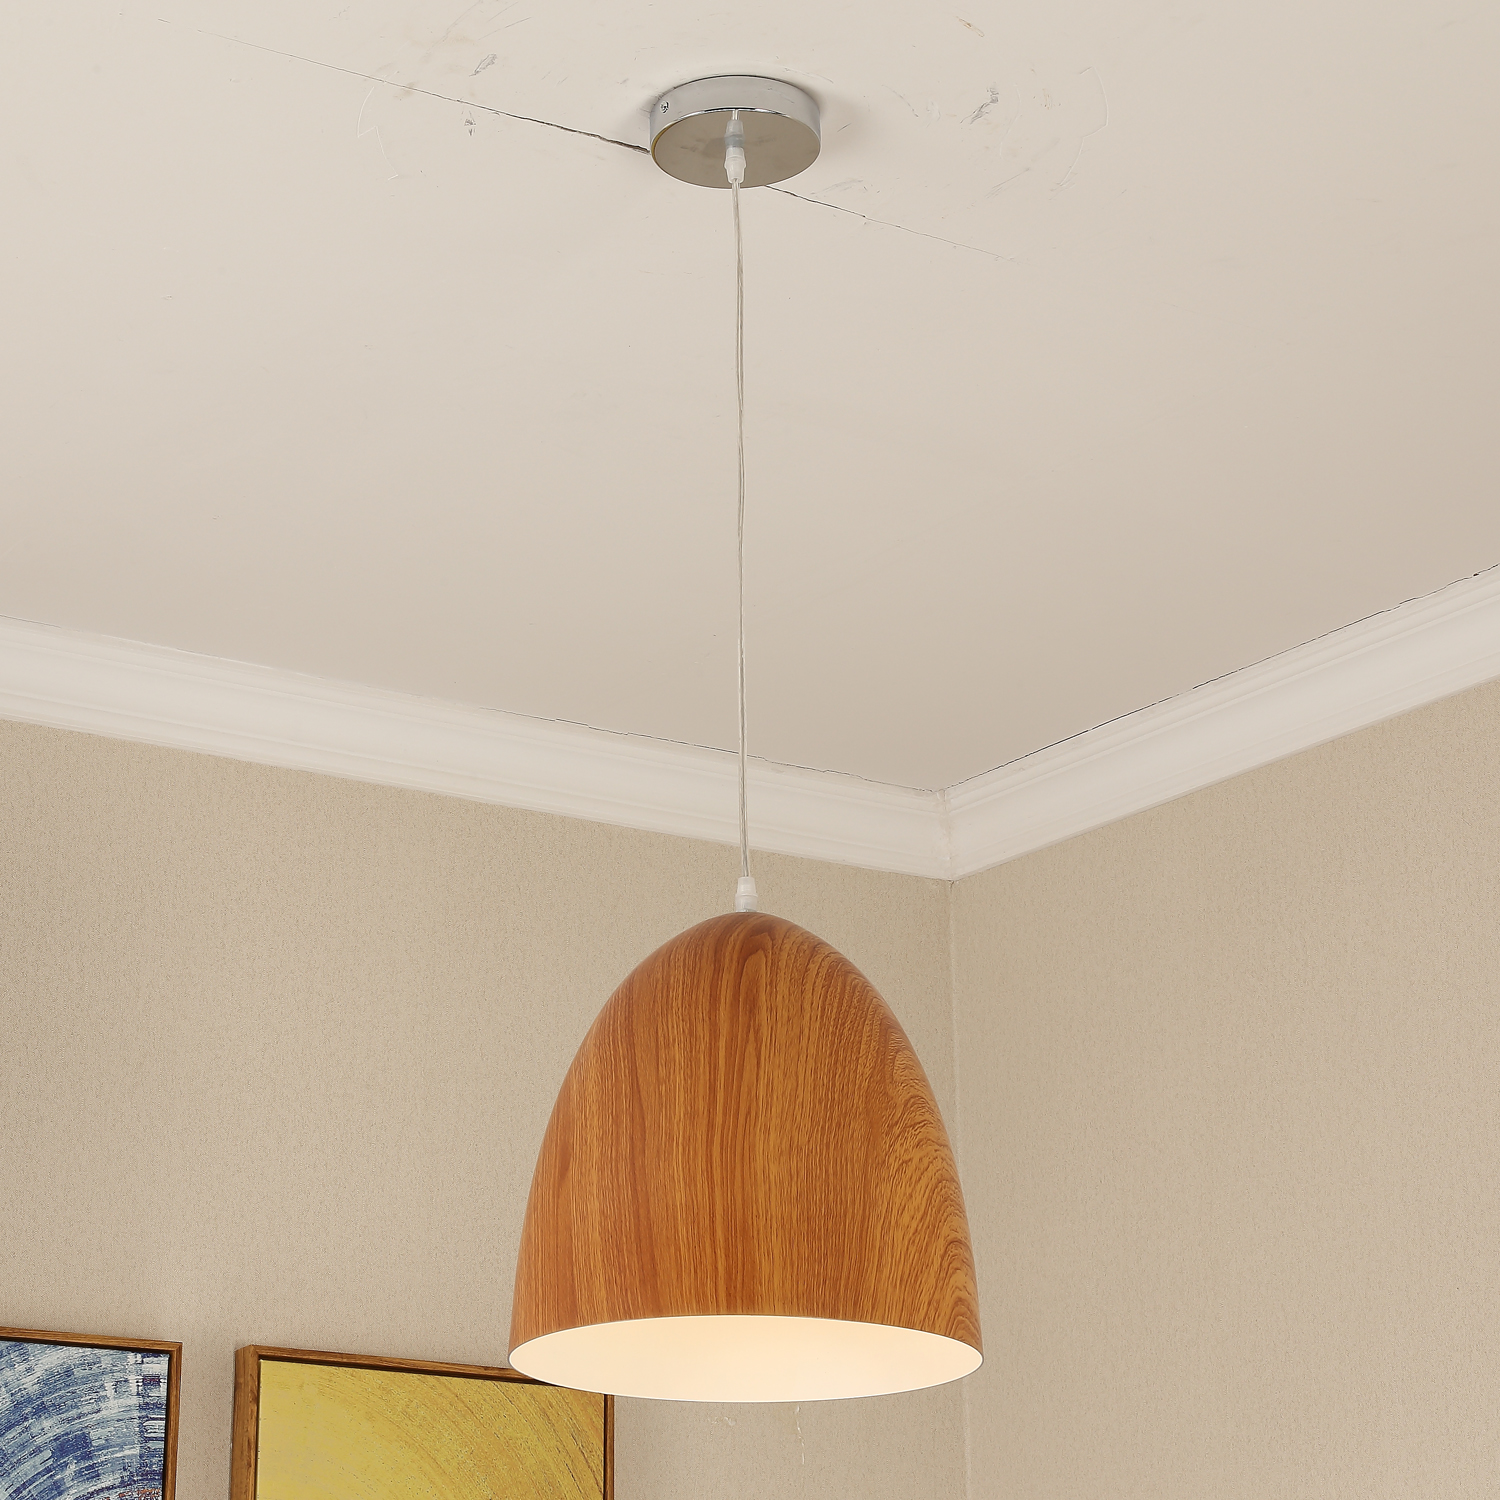 Homcom Ceiling Hanging Lamp Shade Wood Grain Colour White Mh Star